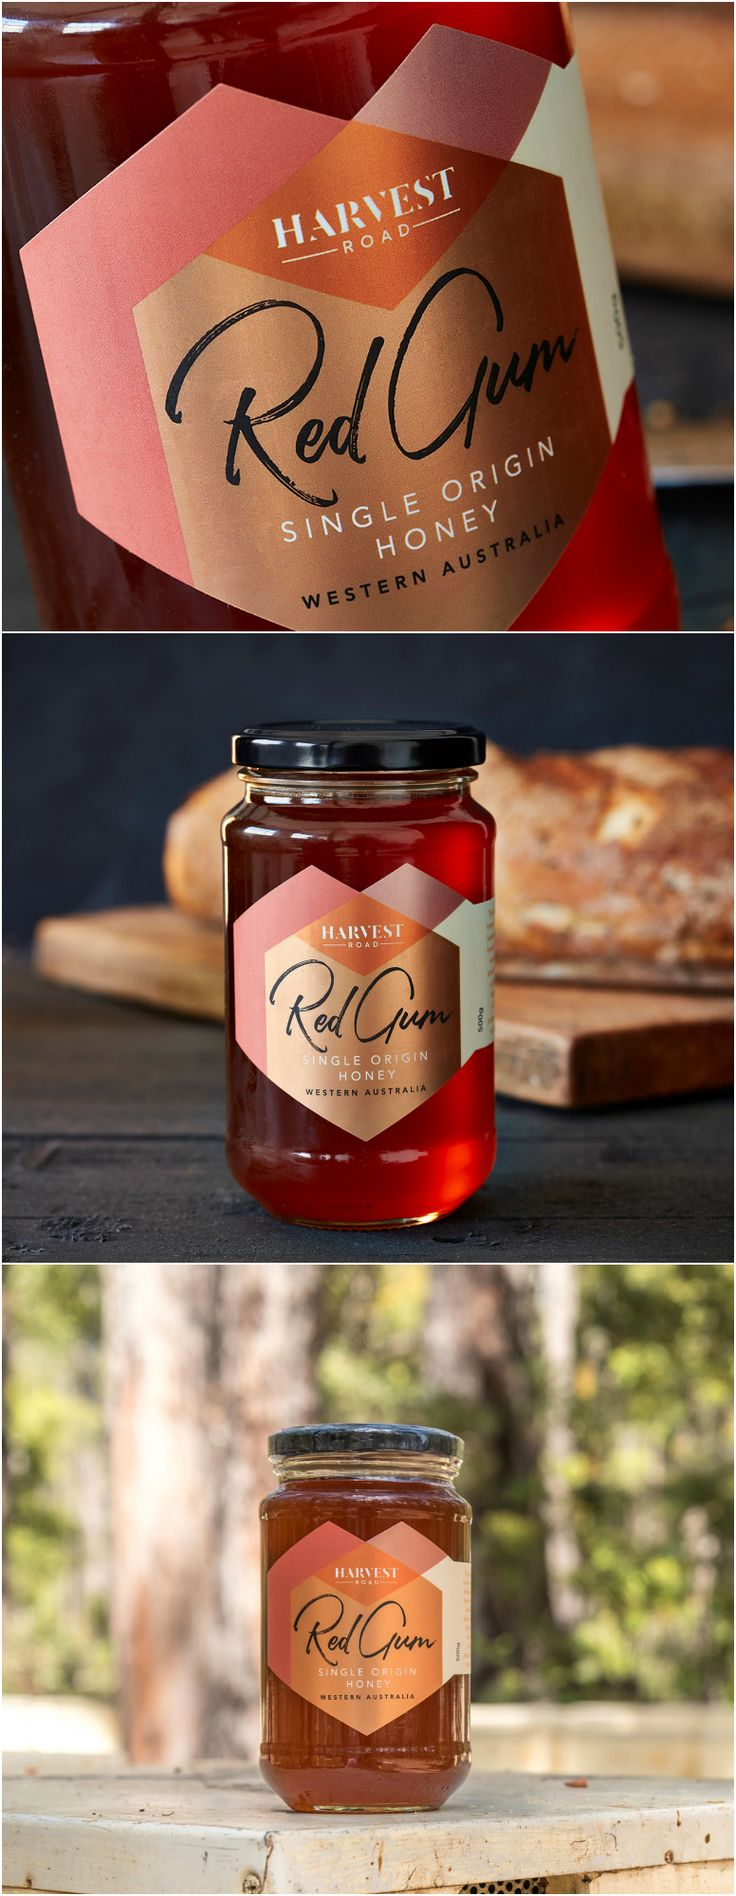 From the Remote Marri Forests of Western Australia, Monofloral Honey Label Packaging Design Design Agency: Asprey Creative Brand / Project Name: Harvest Road Honey Location: Australia Category: #Honey #cupboardfood #food World Brand & Packaging Design Society